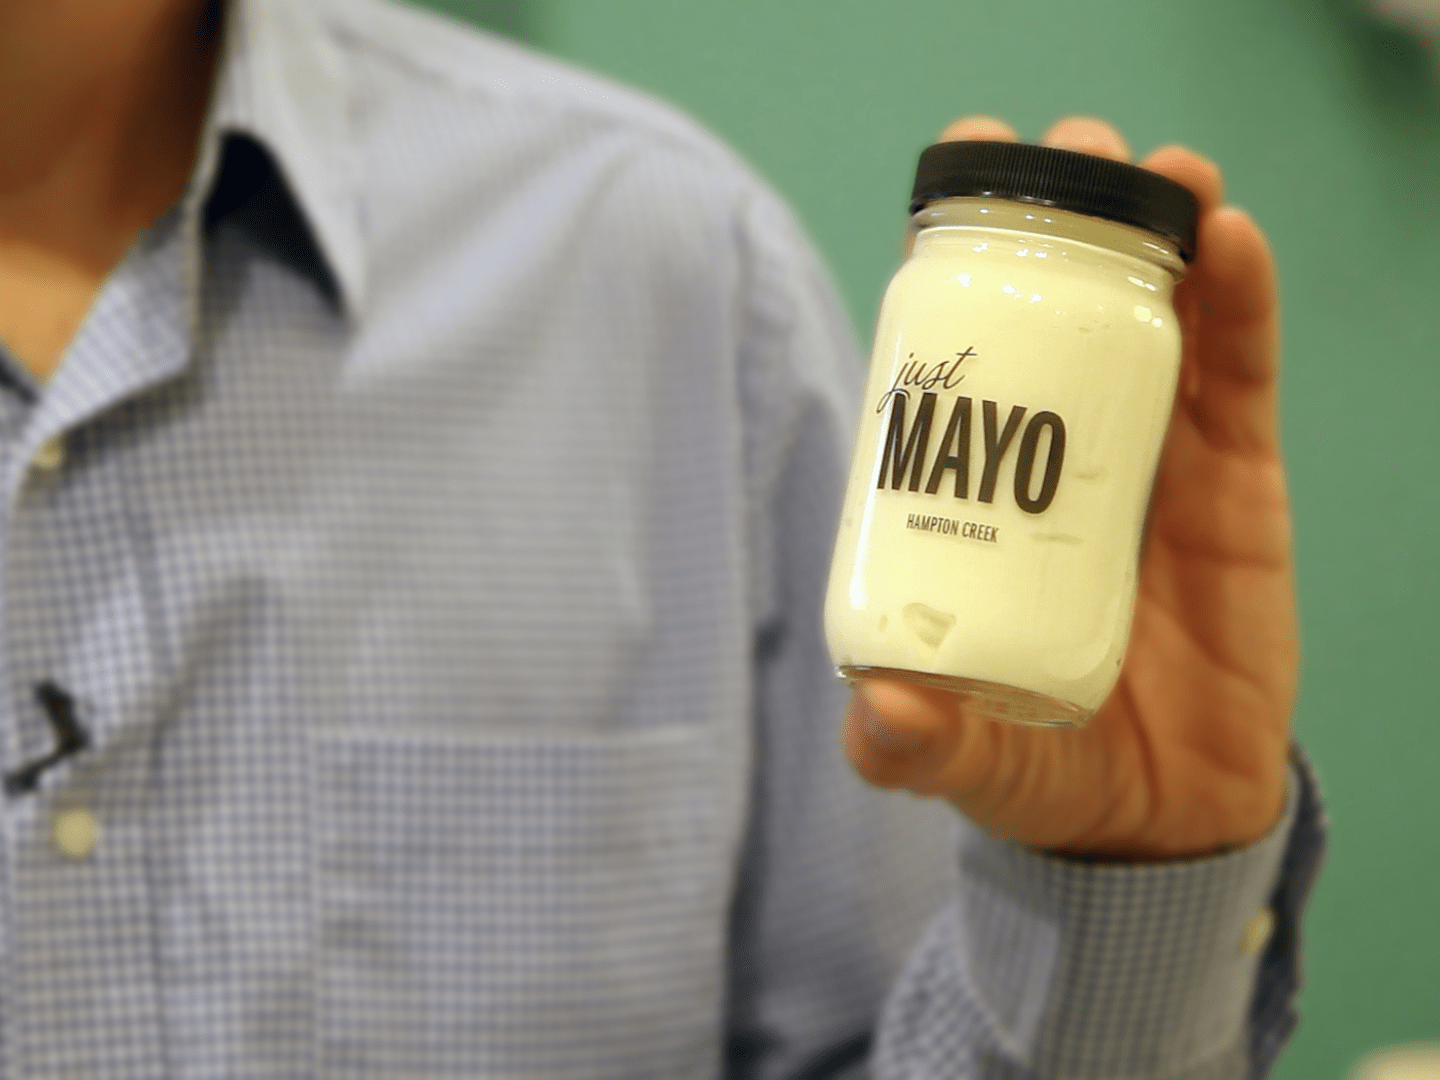 August: Hampton Creek hires people to buy jars of its eggless mayo from stores.